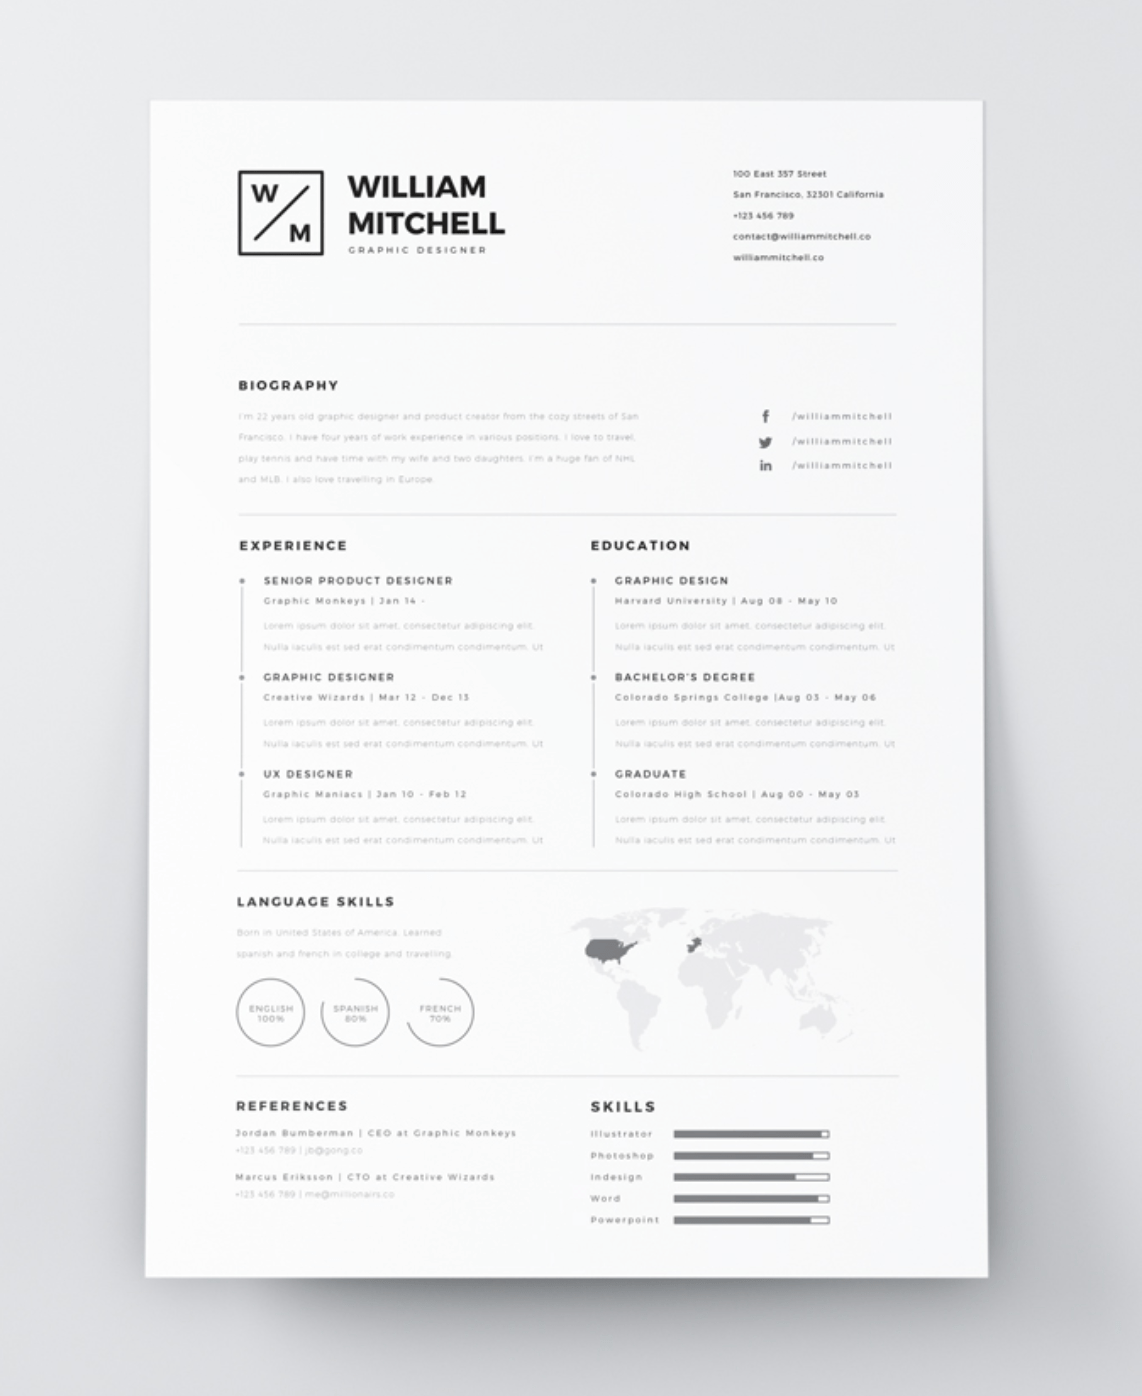 Indesign Resume Template Screen Shot 2018 12 14 At 11 00 49 Am indesign resume template|wikiresume.com